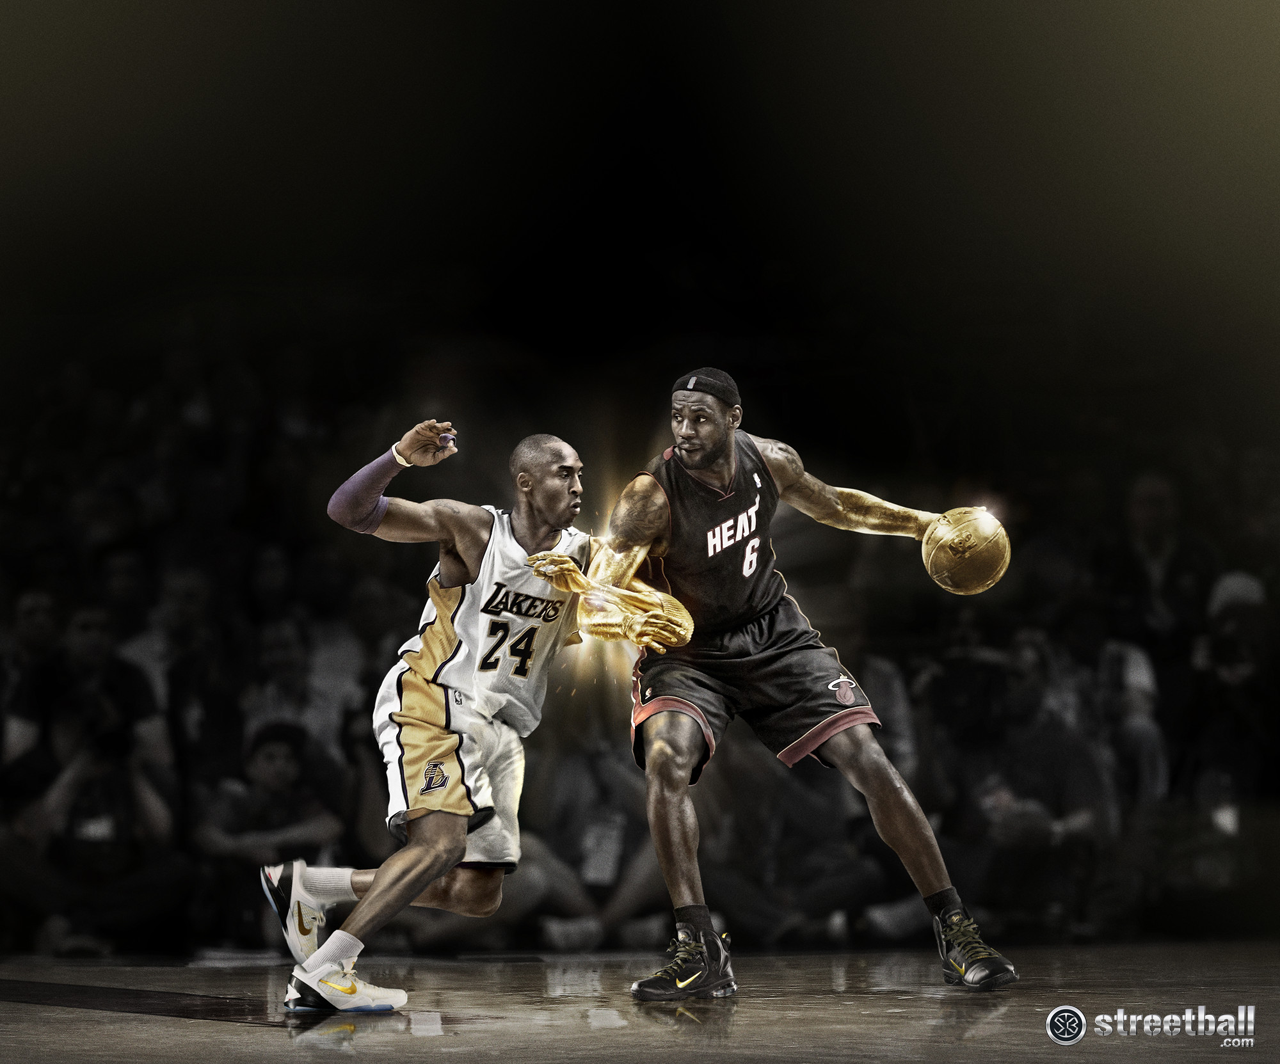 LeBron James vs Kobe Bryant LeBron James vs Kobe Bryant